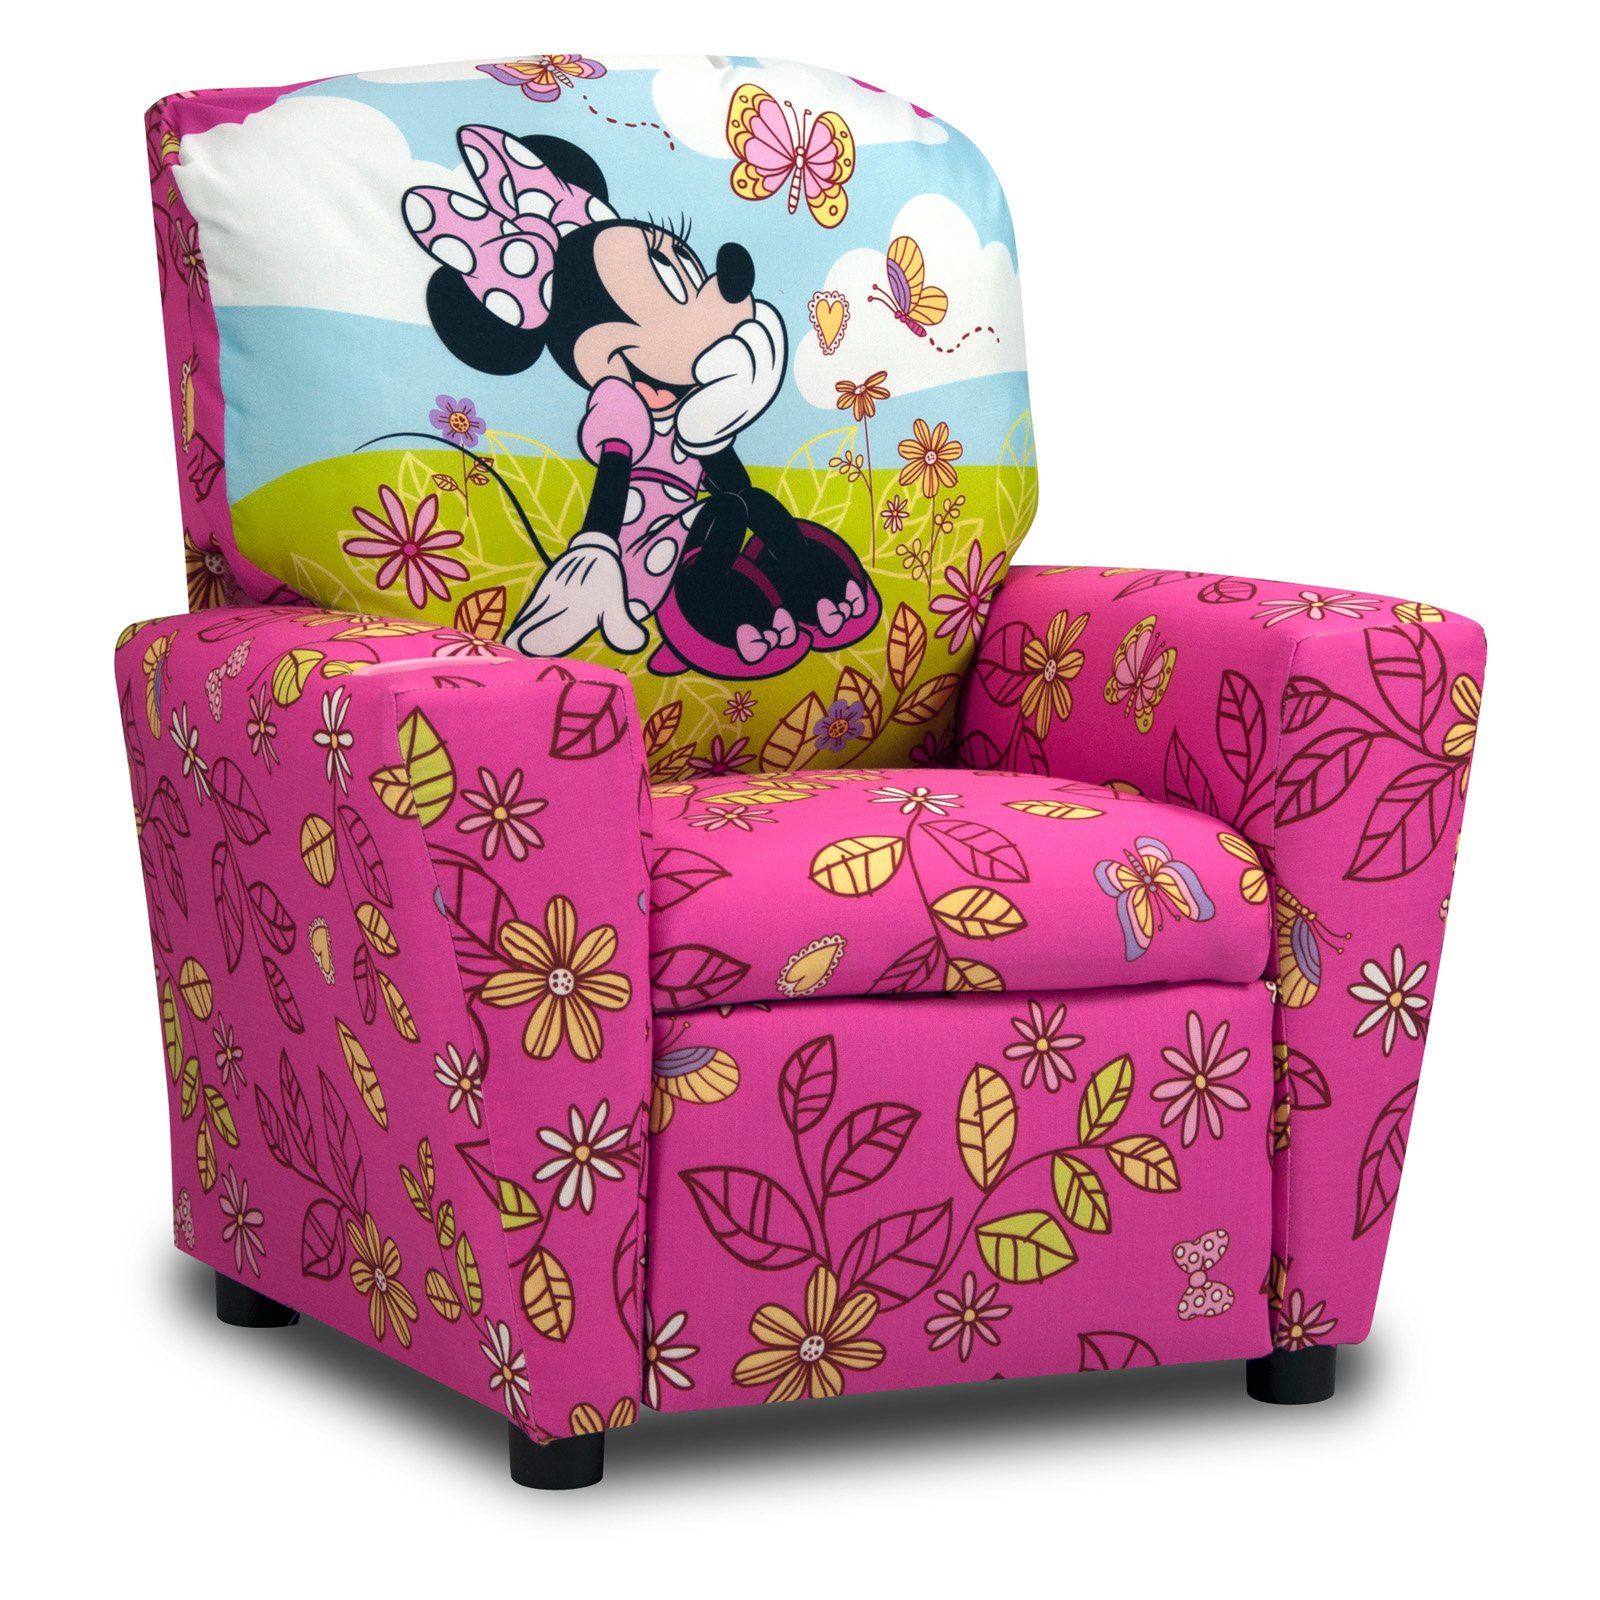 kids chairs walmart lazy boy lift chair error code e68 minnie mouse furniture for toddlers home decor